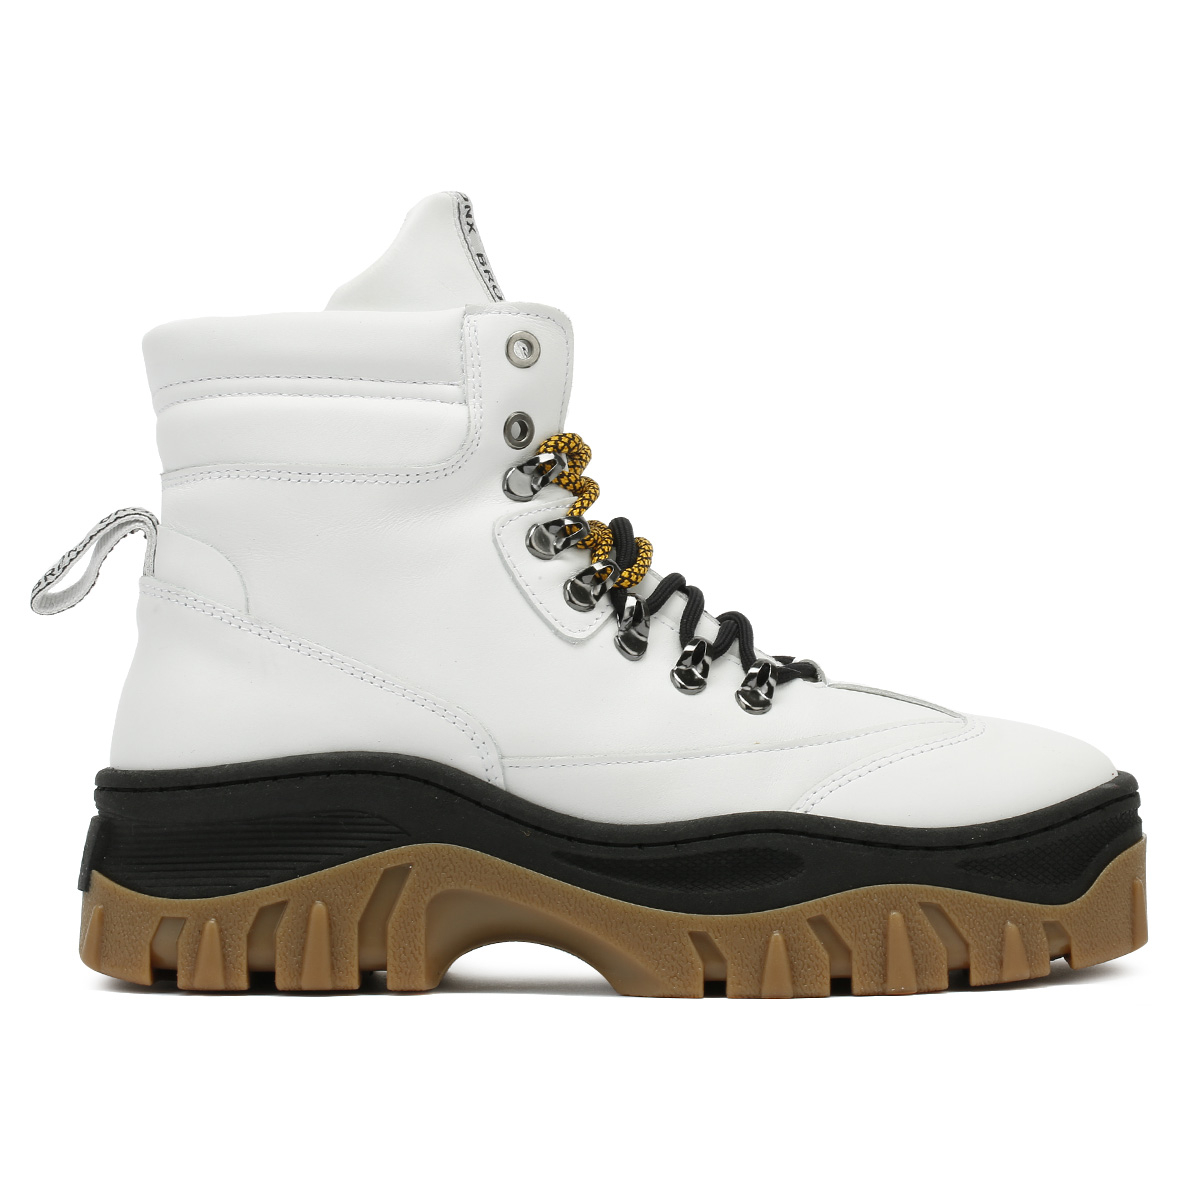 Details about Bronx Womens Chunky Trainers White & Black Jaxstar Hi Top Ankle Shoes Boots